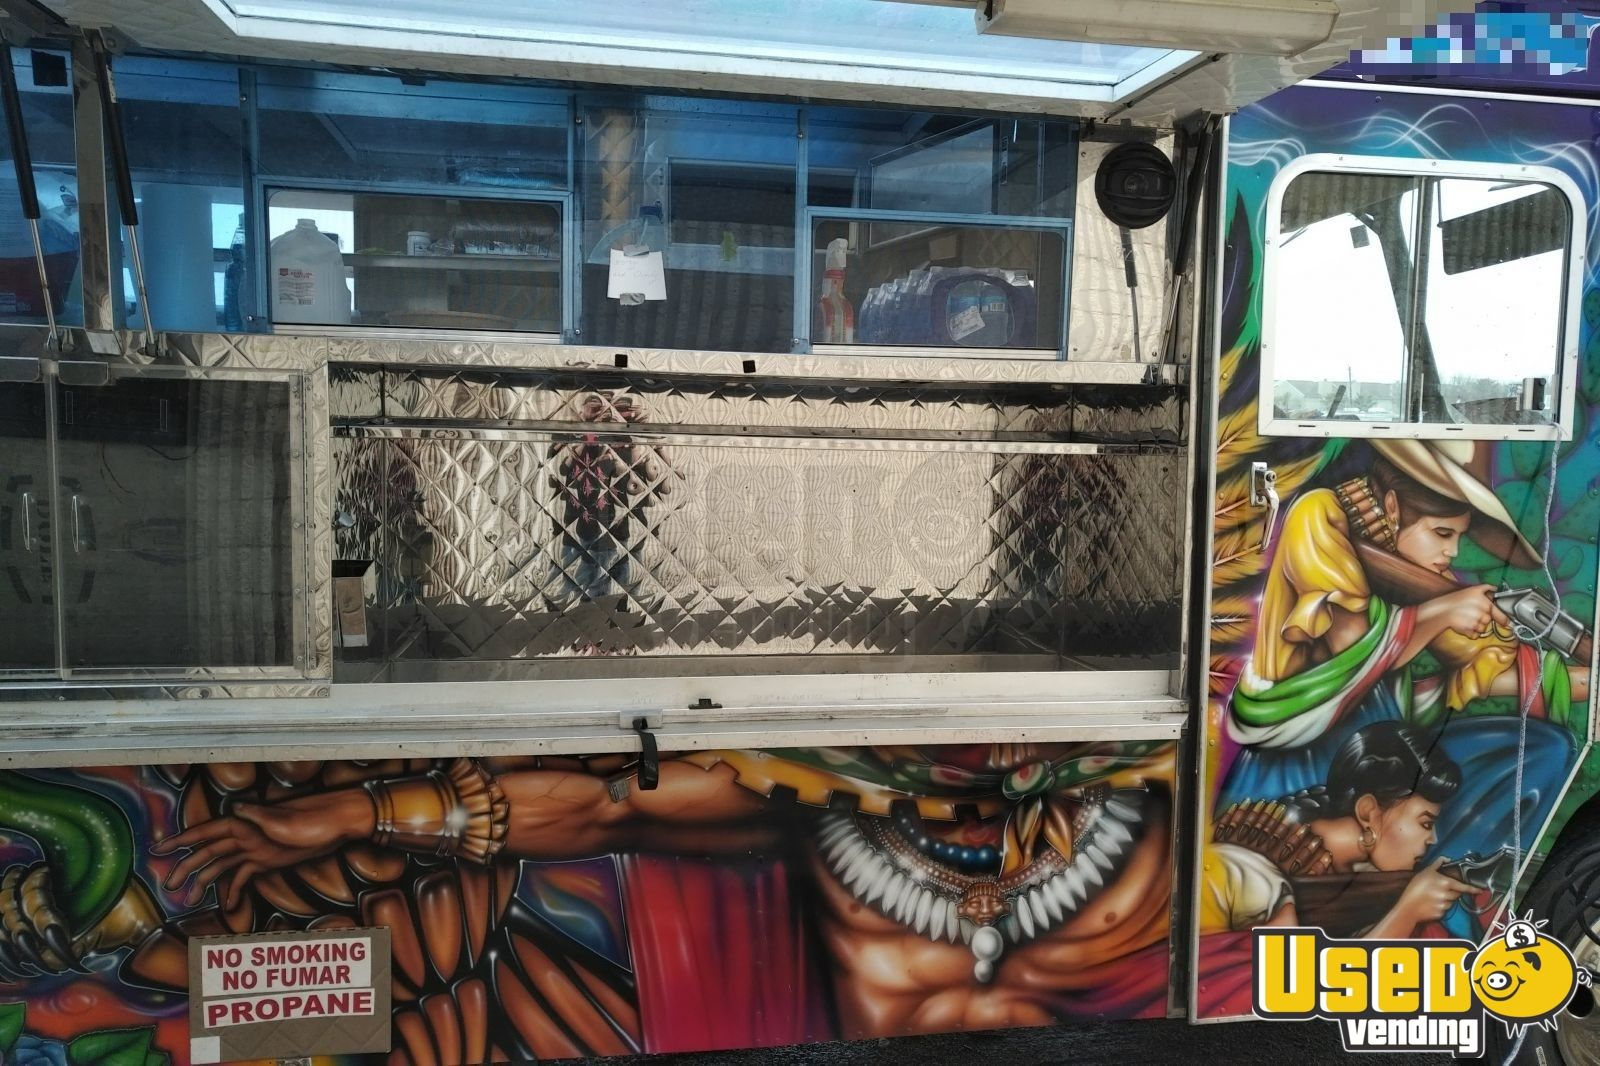 1992 Chevy P30 All-purpose Food Truck Refrigerator Texas for Sale - 4